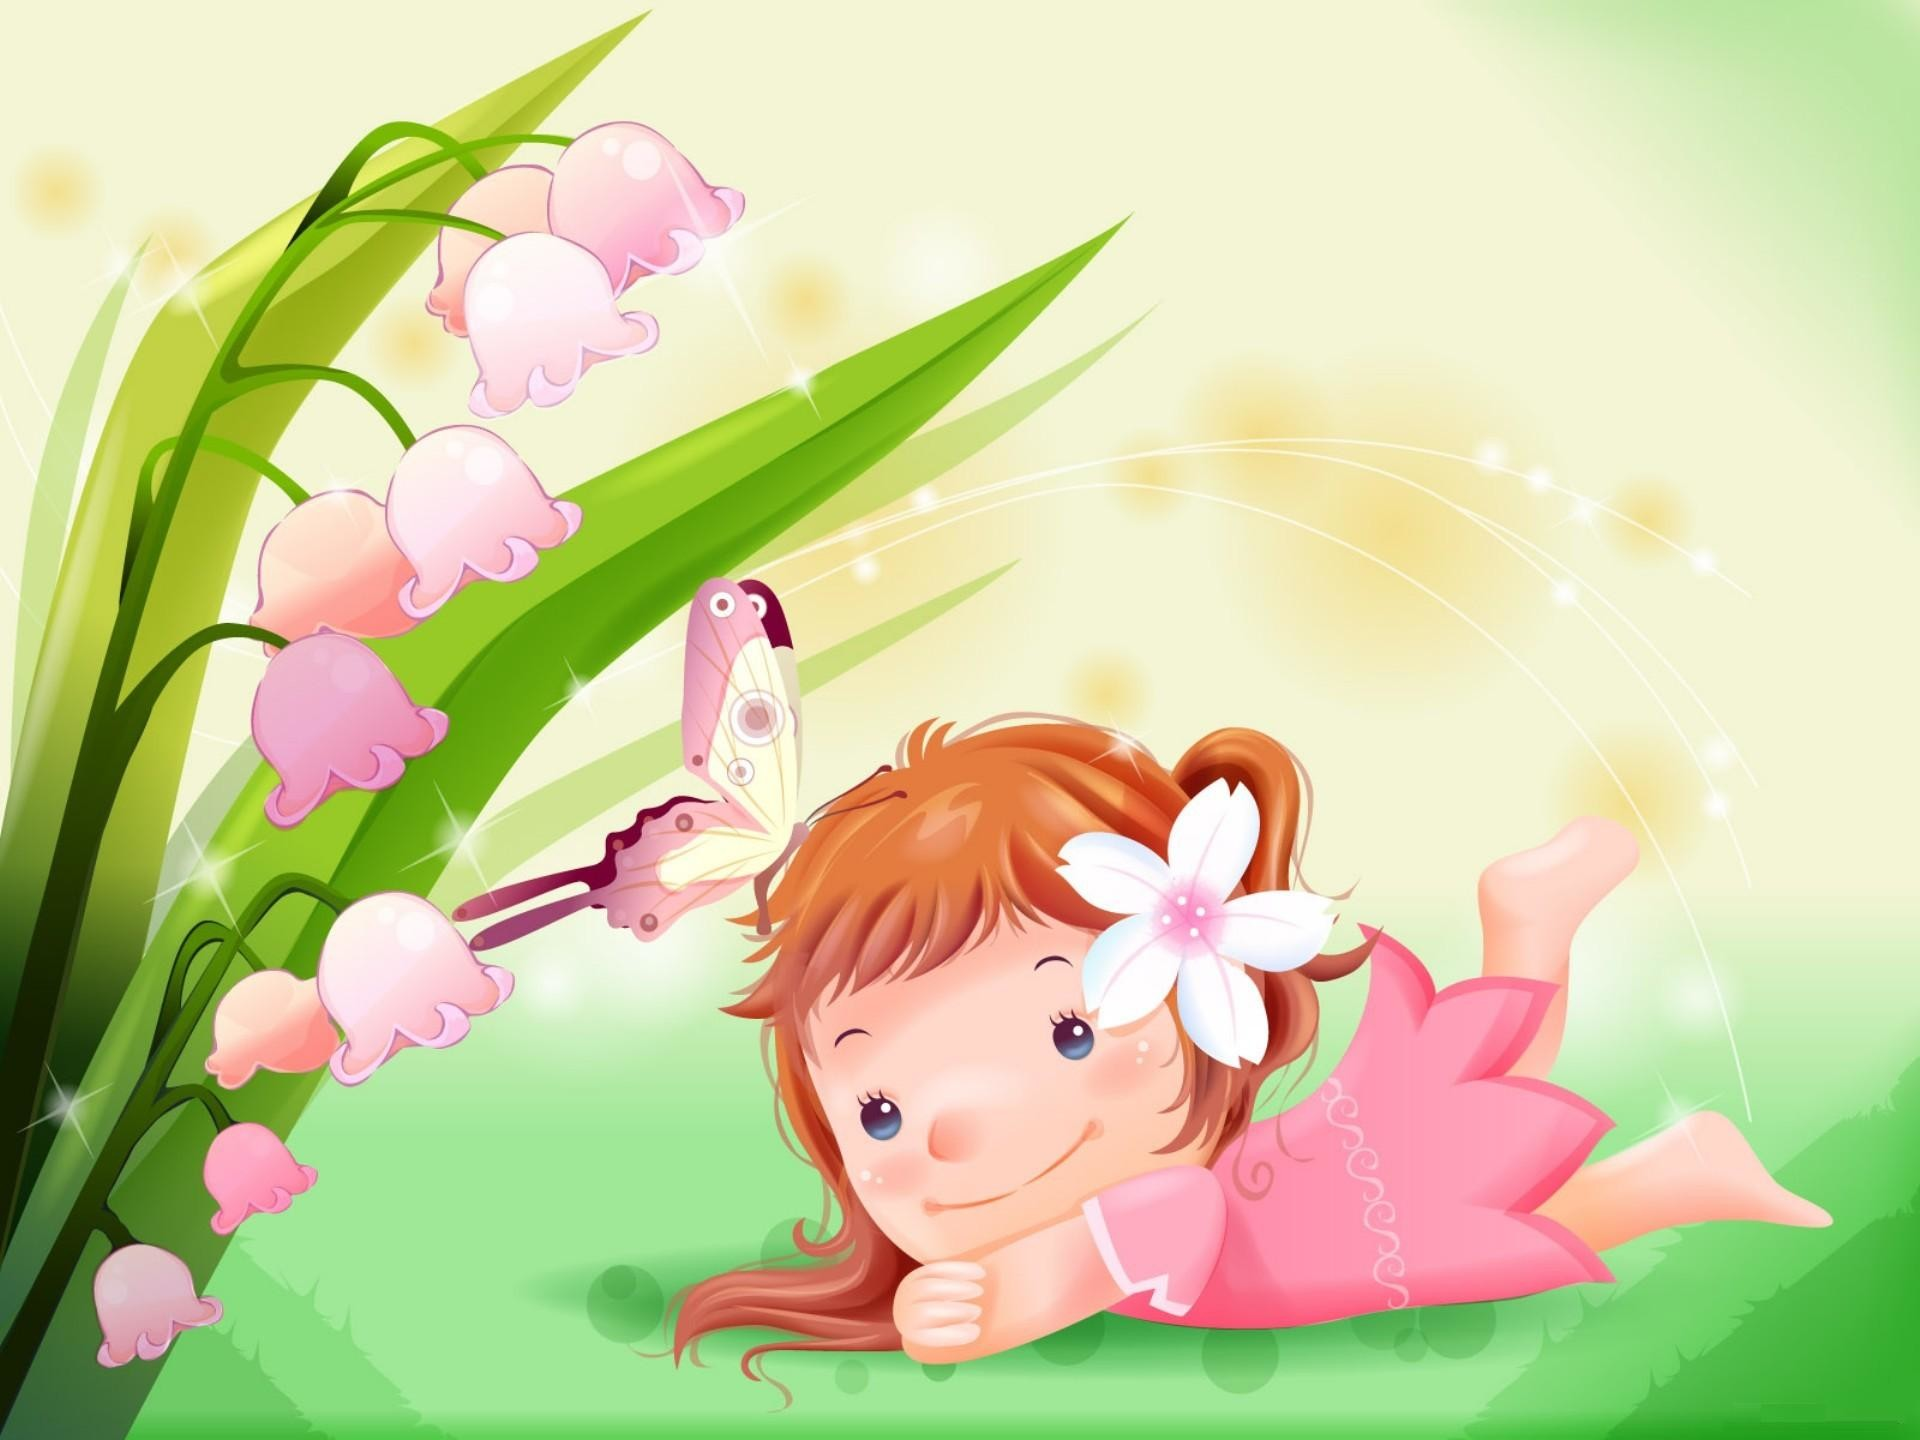 Mobile9 Cute Wallpapers Cute Cartoon Wallpapers For Girls 46 Images